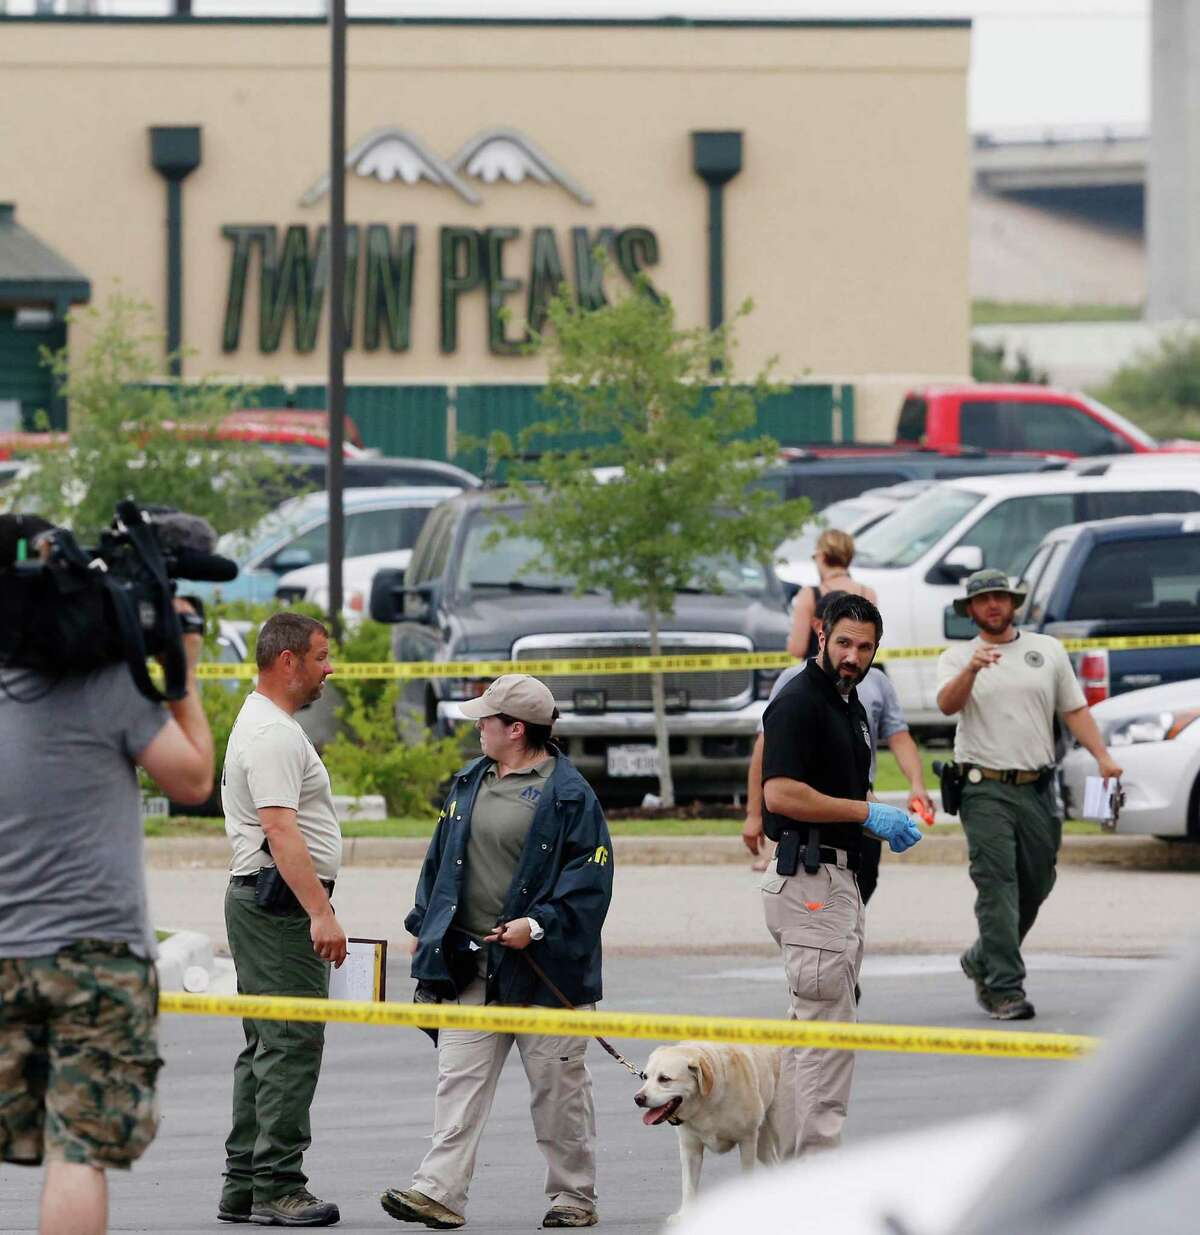 Law enforcement officers use a dog to search parked cars located in part of the Central Texas Marketplace Tuesday, May 19, 2015, in Waco, Texas. A deadly weekend shootout involving rival motorcycle gangs apparently began with a parking dispute and someone running over a gang member's foot, police said Tuesday. One man was injured when a vehicle struck his foot. That caused a dispute that continued inside the restaurant, where fighting and then shooting began, before spilling back outside, Waco police Sgt. W. Patrick Swanton said. The shootout left nine people dead injured 18 wounded. (Rod Aydelotte/Waco Tribune-Herald via AP)